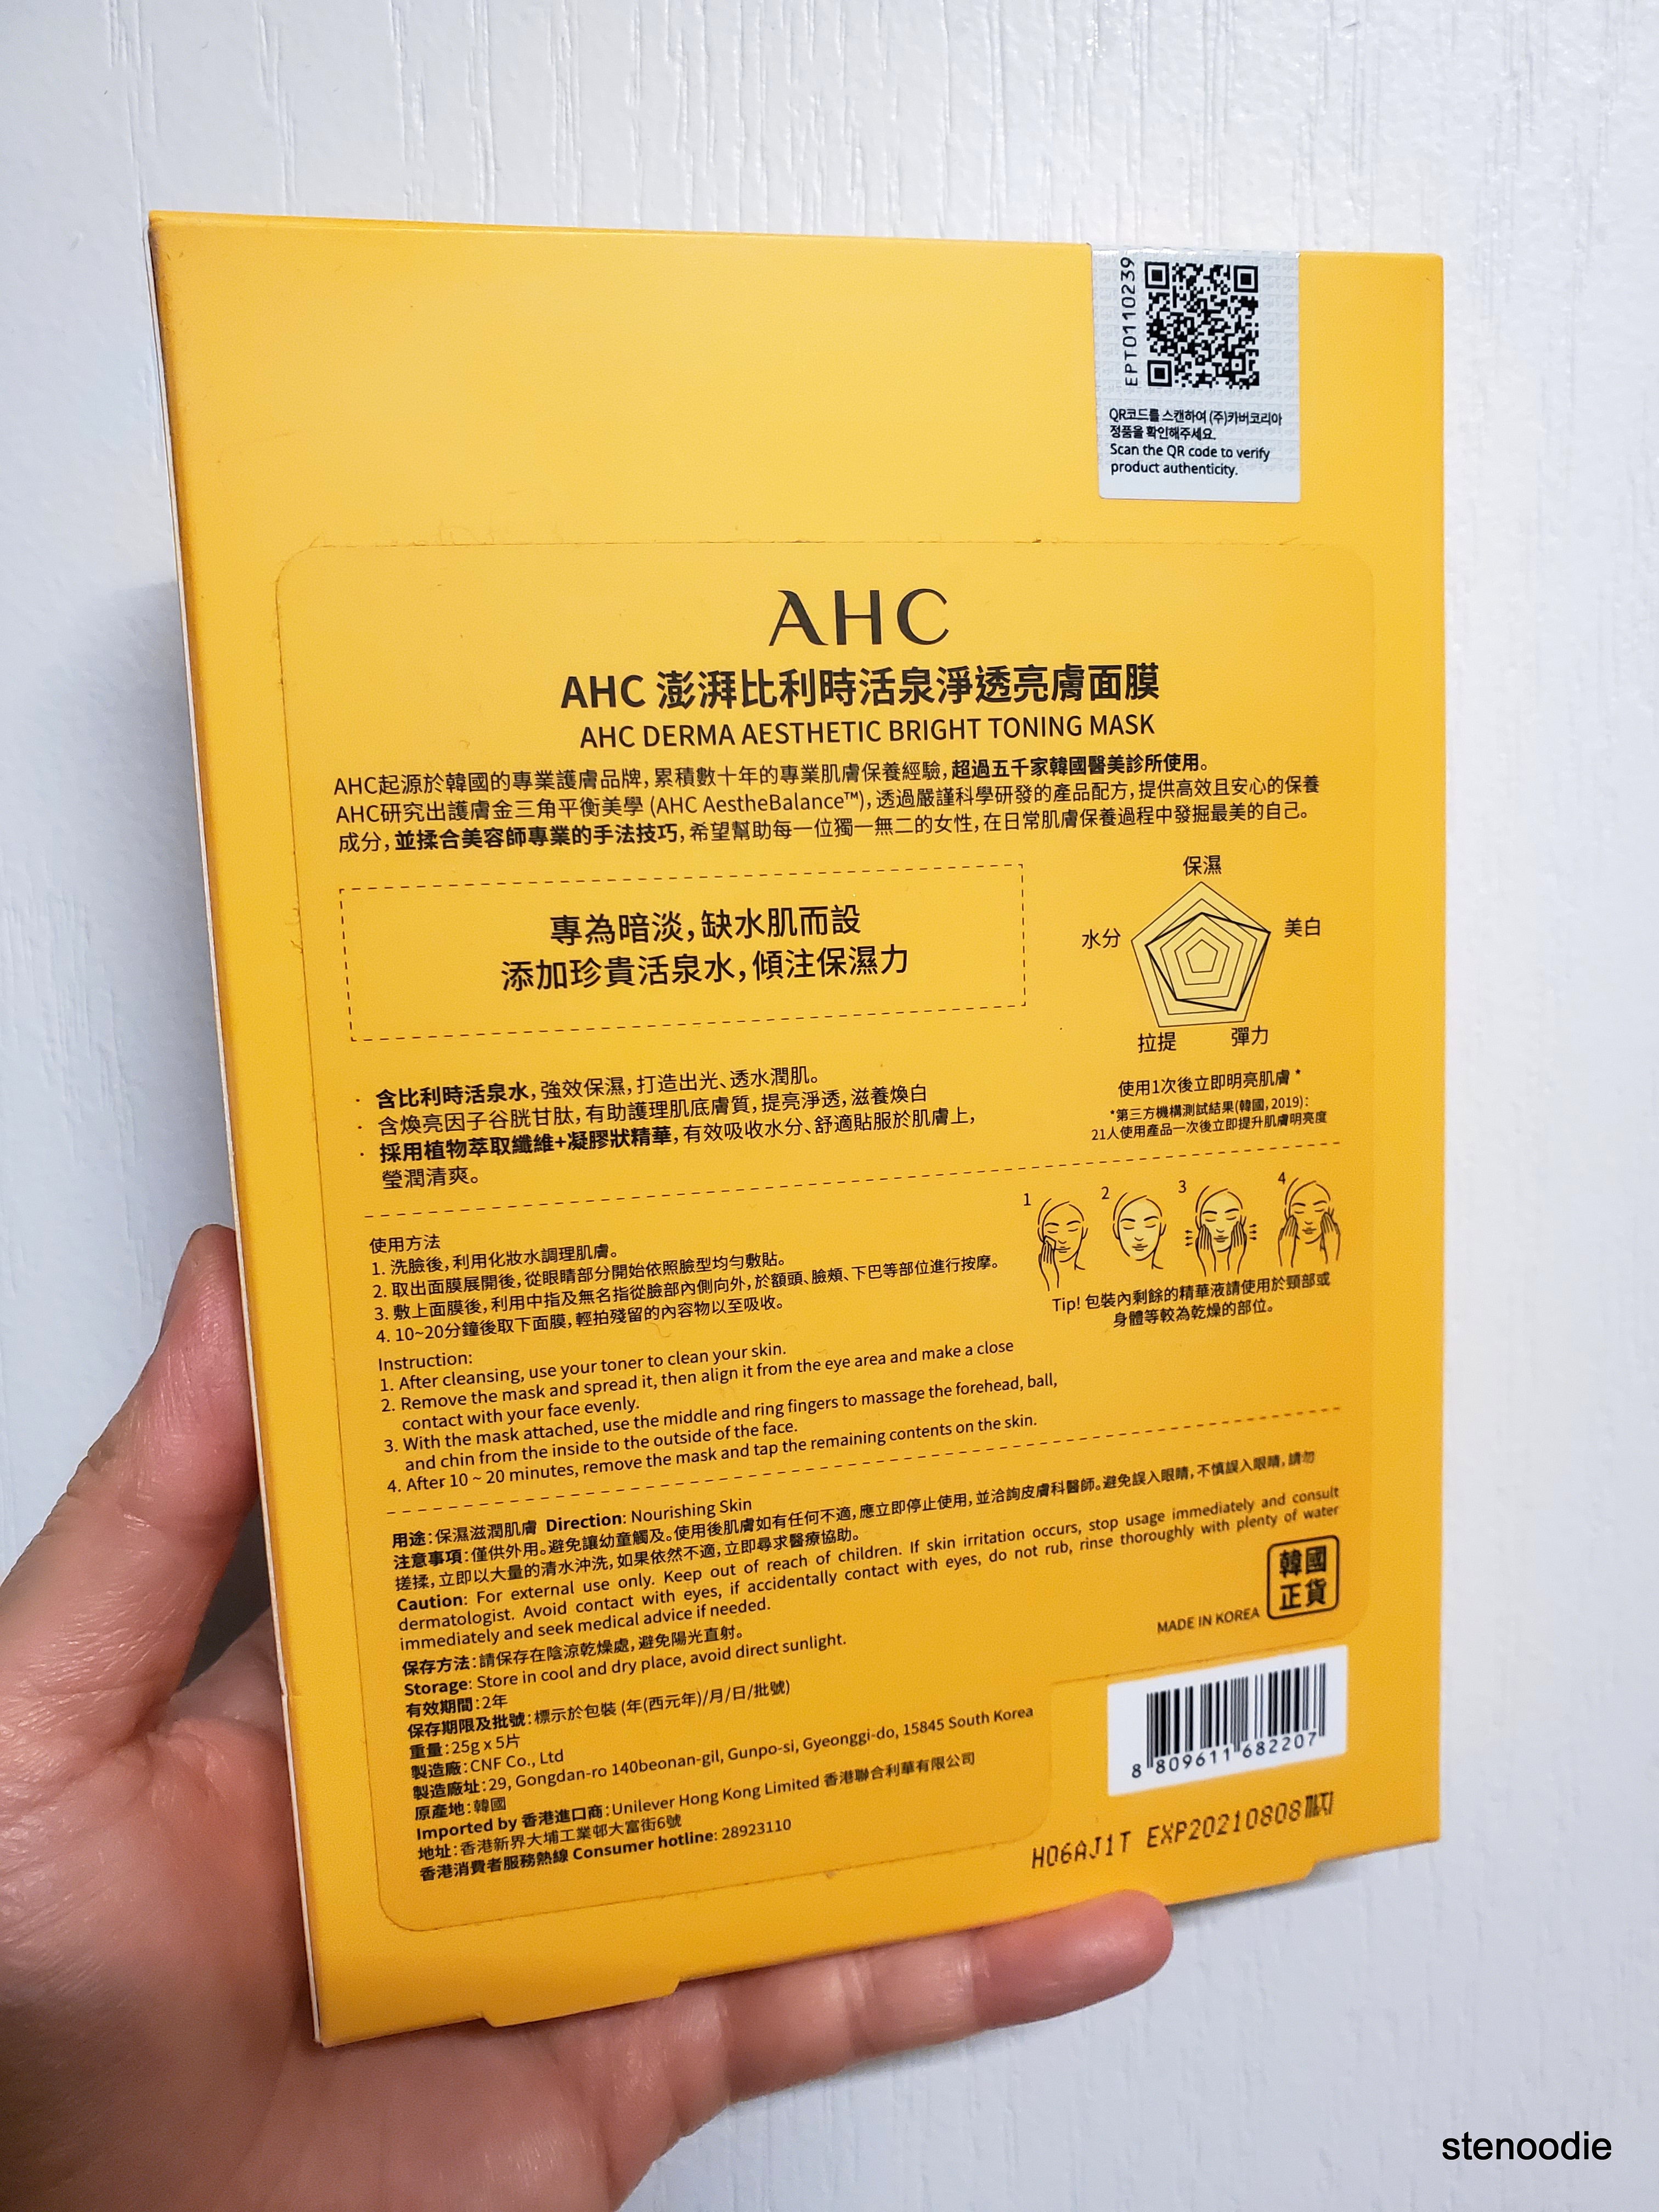 AHC Derma Aesthetic Bright Toning Mask back of box